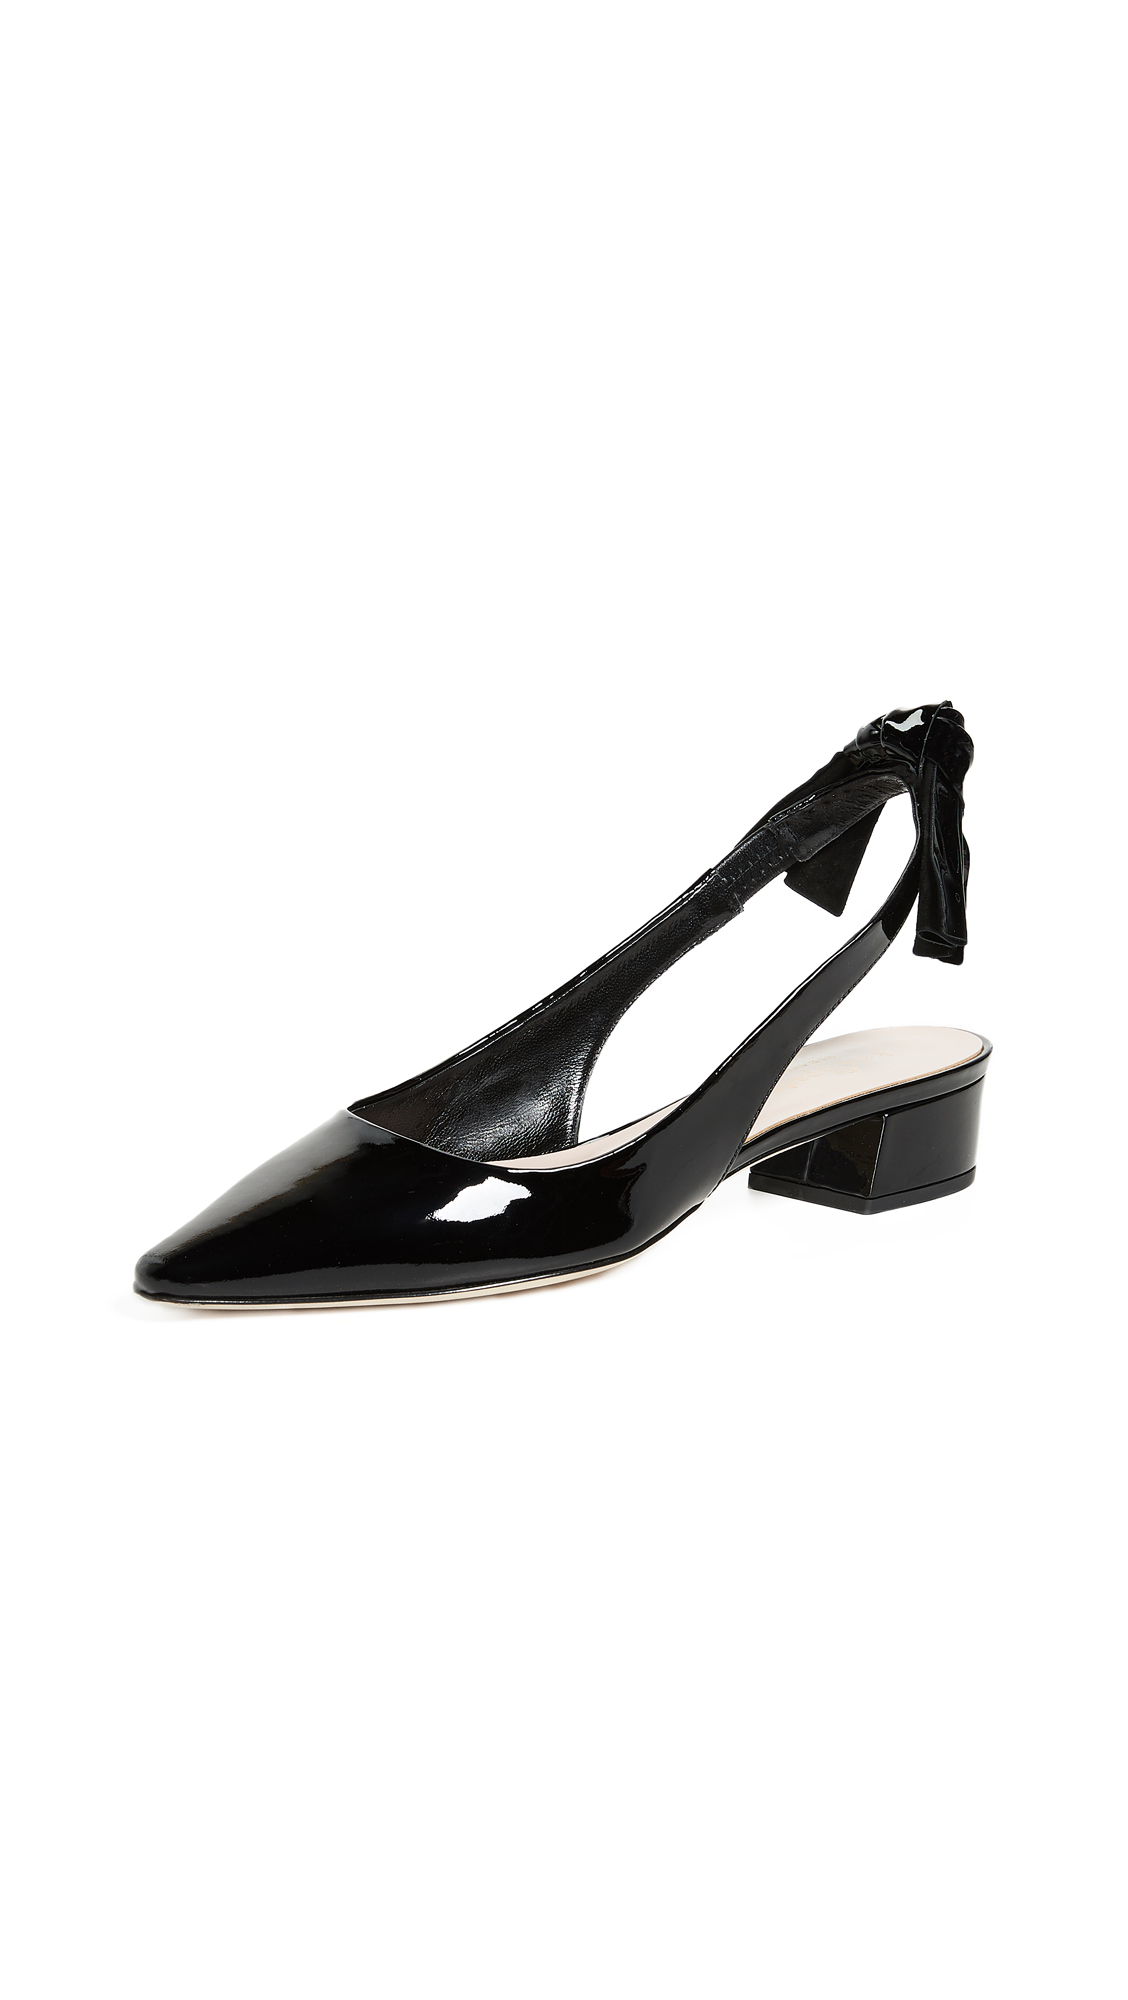 Kate Spade New York Lucia Slingback Pumps - Black